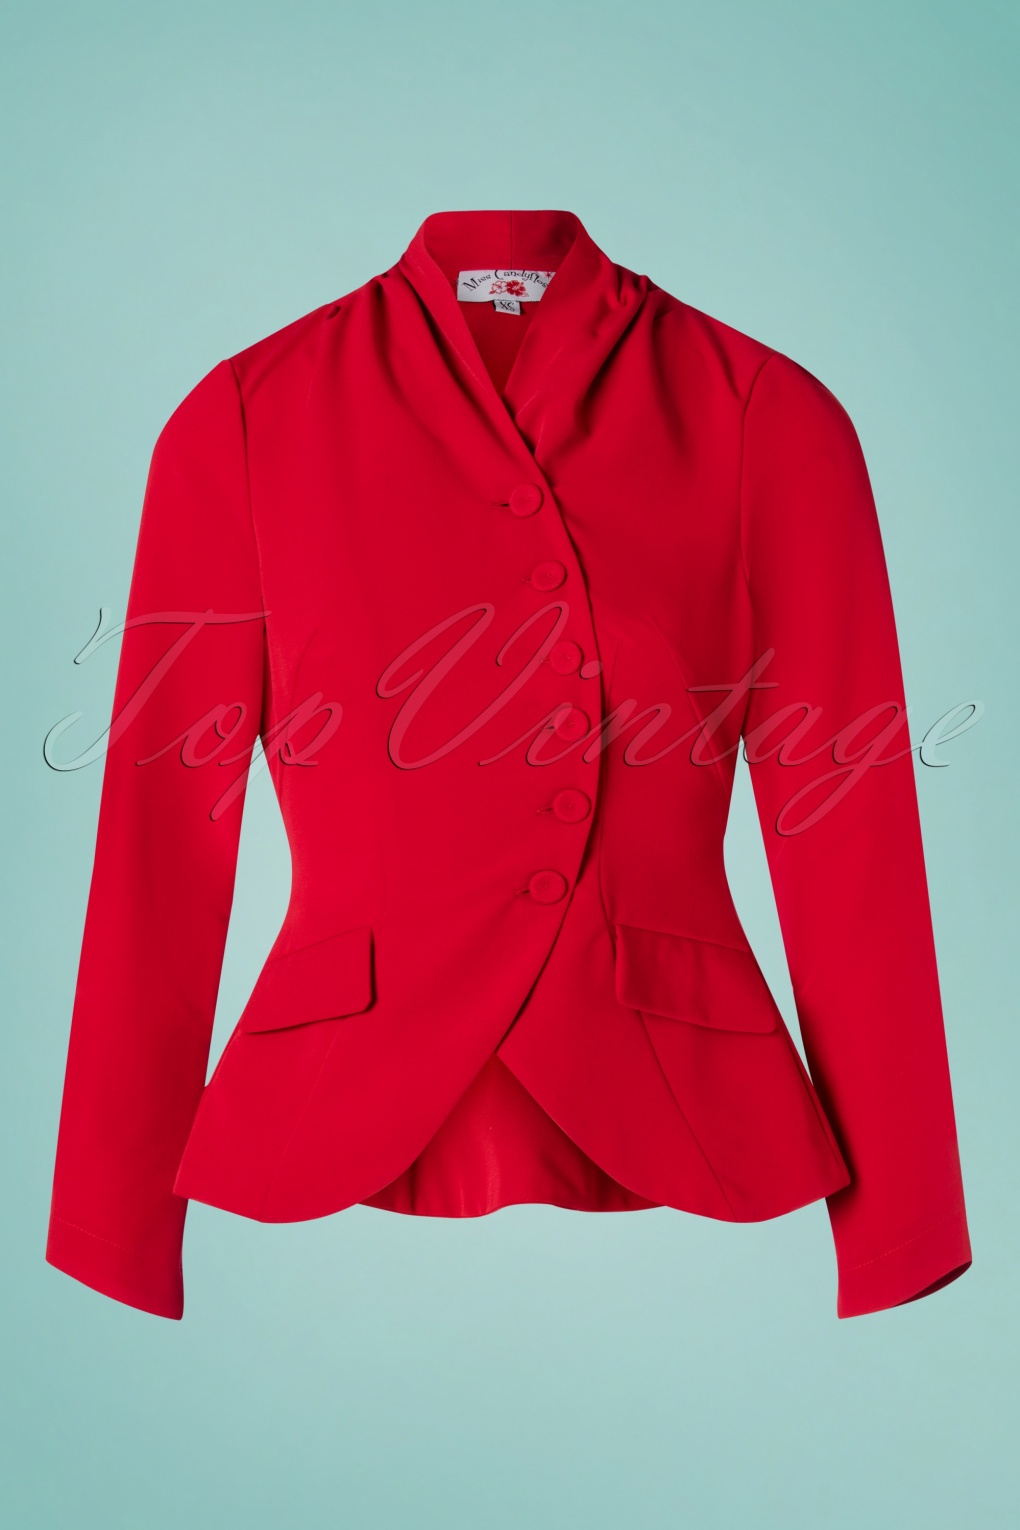 1950s Jackets, Coats, Bolero | Swing, Pin Up, Rockabilly 40s Clemence Jacket in Red £74.13 AT vintagedancer.com